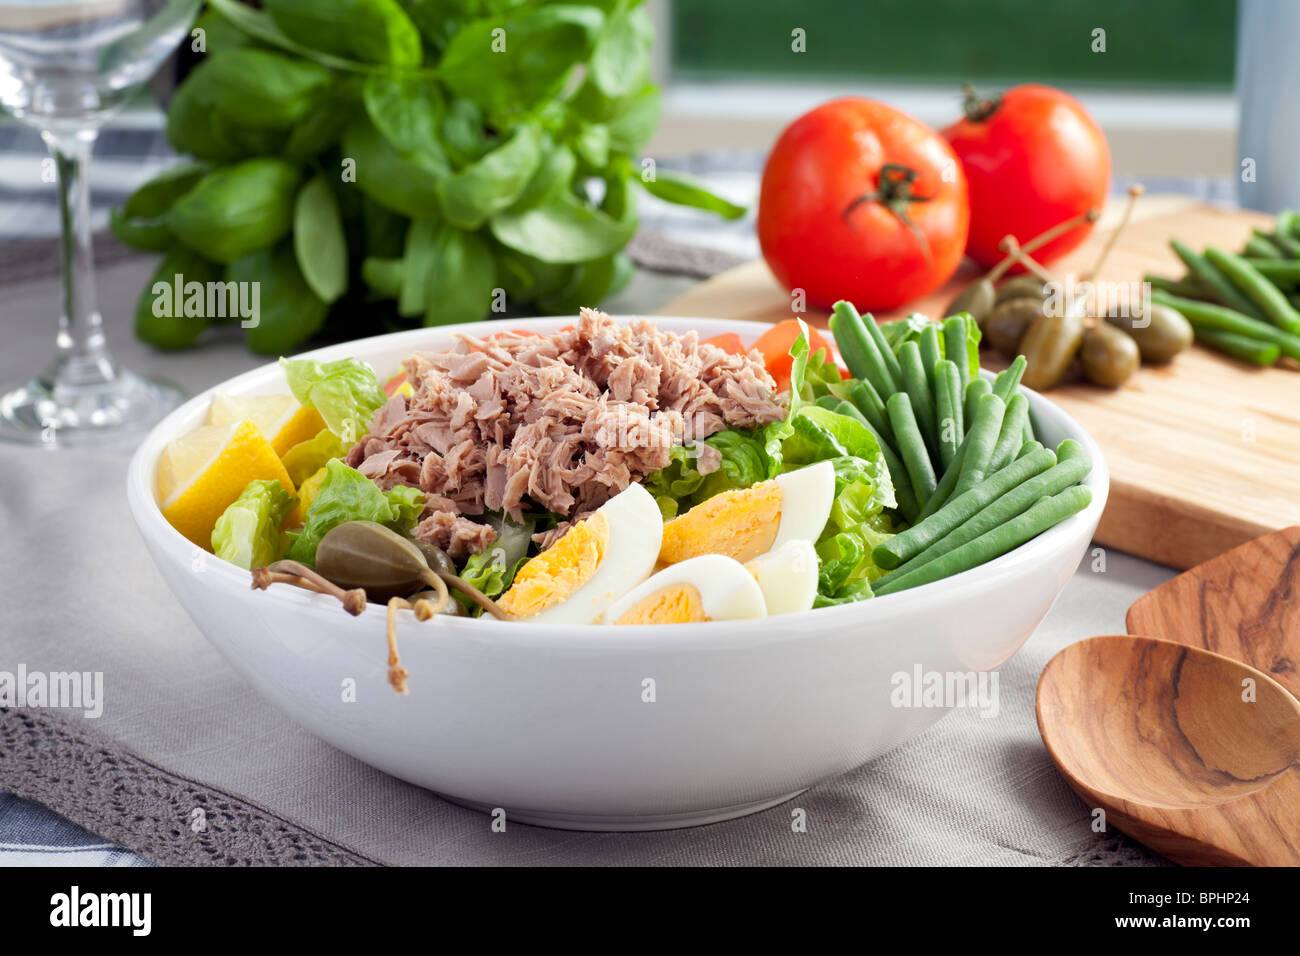 Salad Nicoise with ingredients in background. - Stock Image